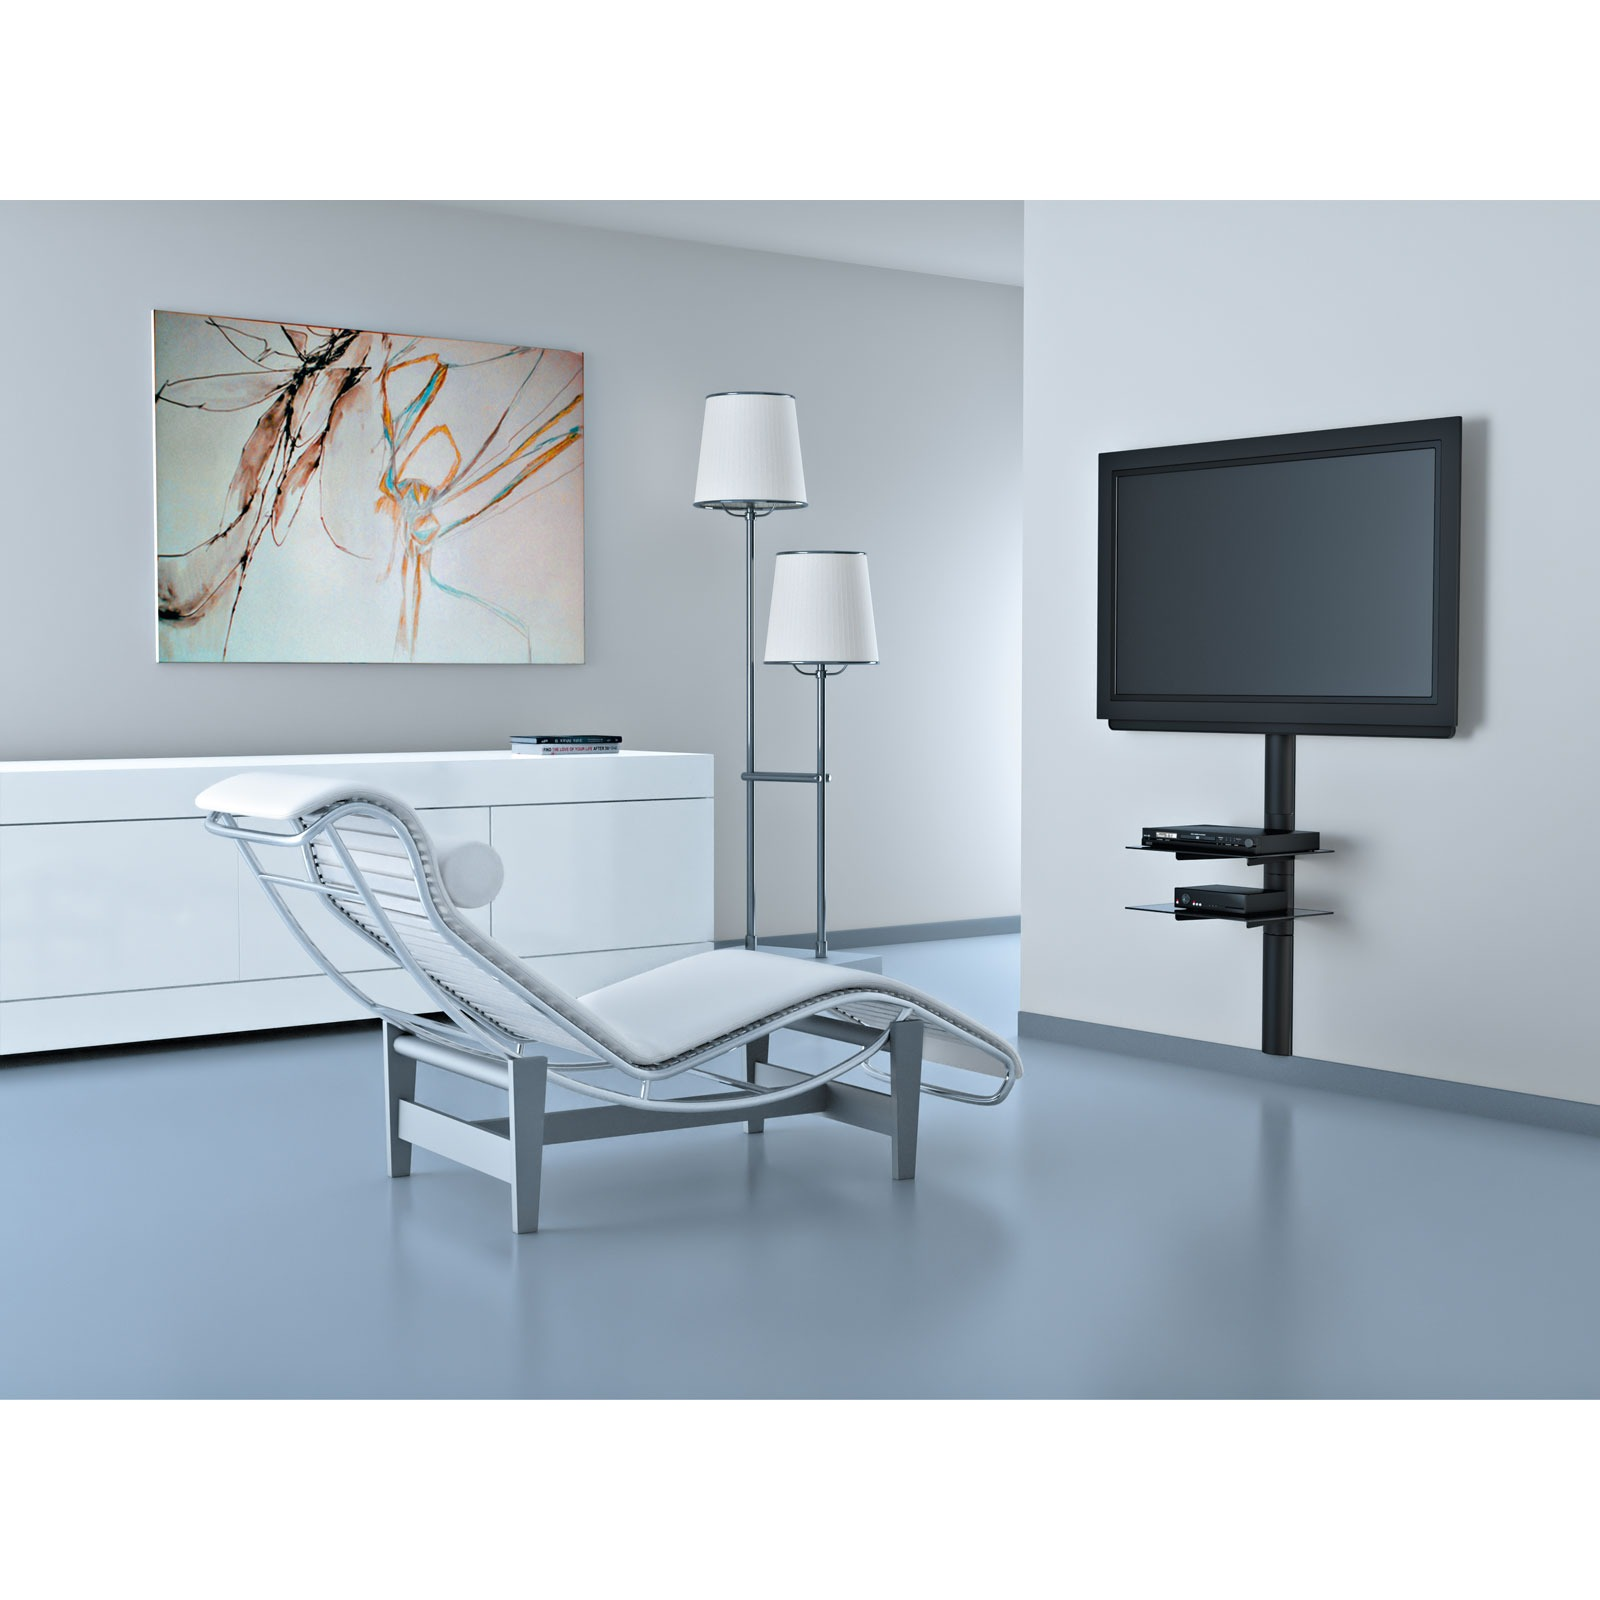 meliconi line cover support mural tv meliconi sur ldlc comment cacher les fils tv murale. Black Bedroom Furniture Sets. Home Design Ideas